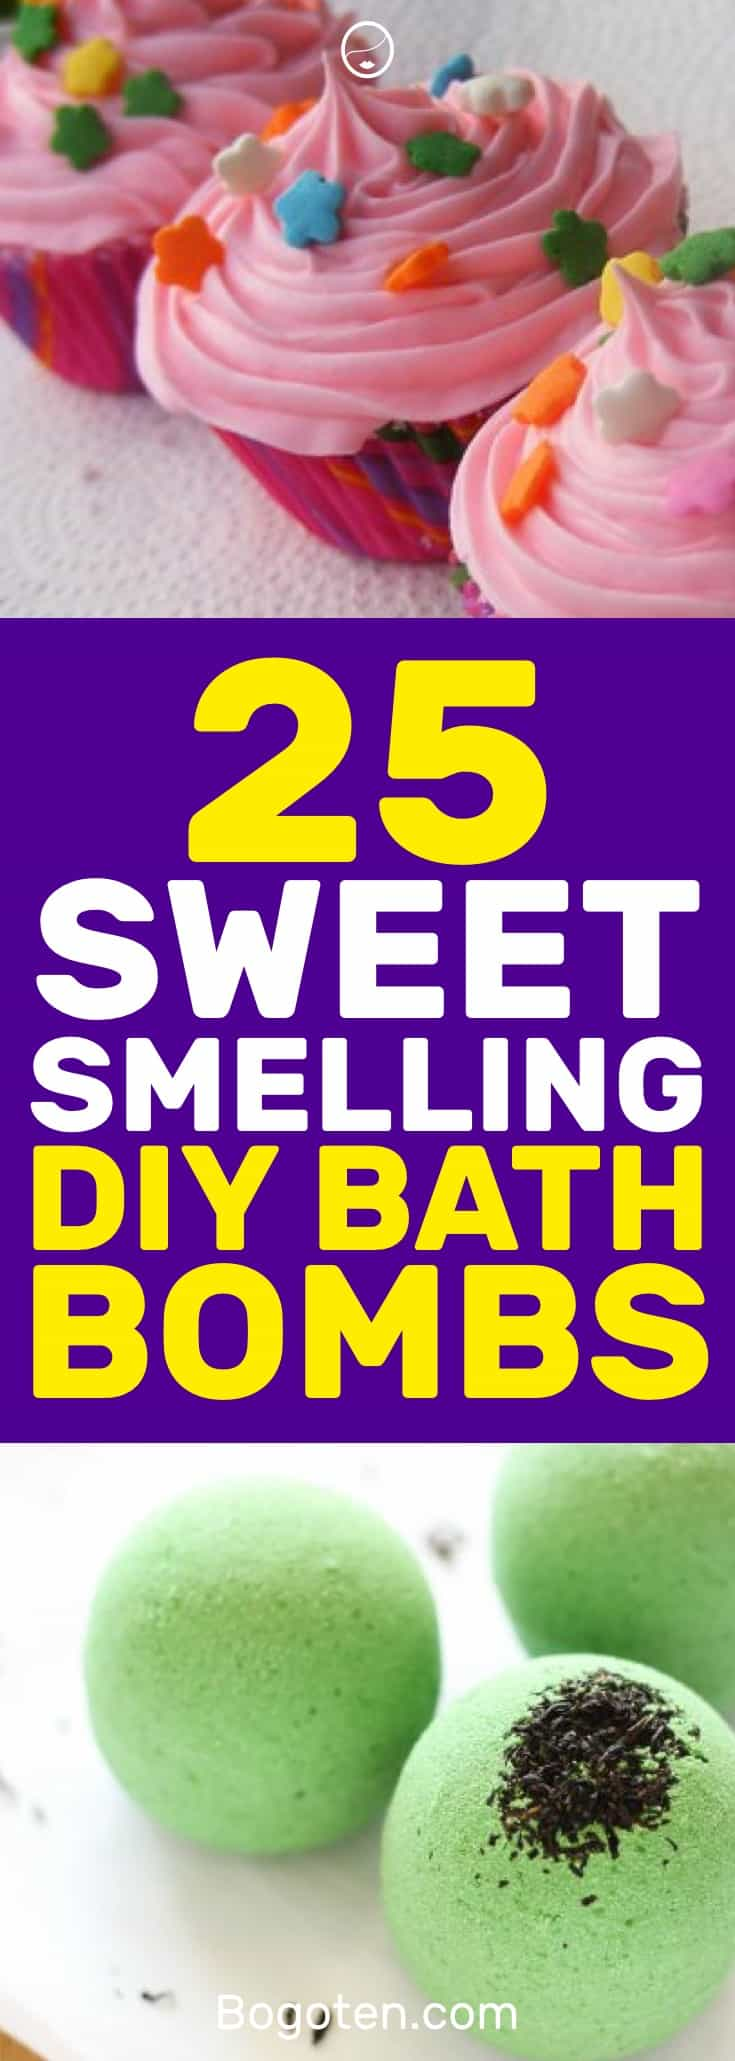 I was looking for some bath bomb recipes when I came across these unique 25 DIY bath bomb recipes to make. Time to soak in the tub with cocoa butter bath bombs! #DIY #Beauty